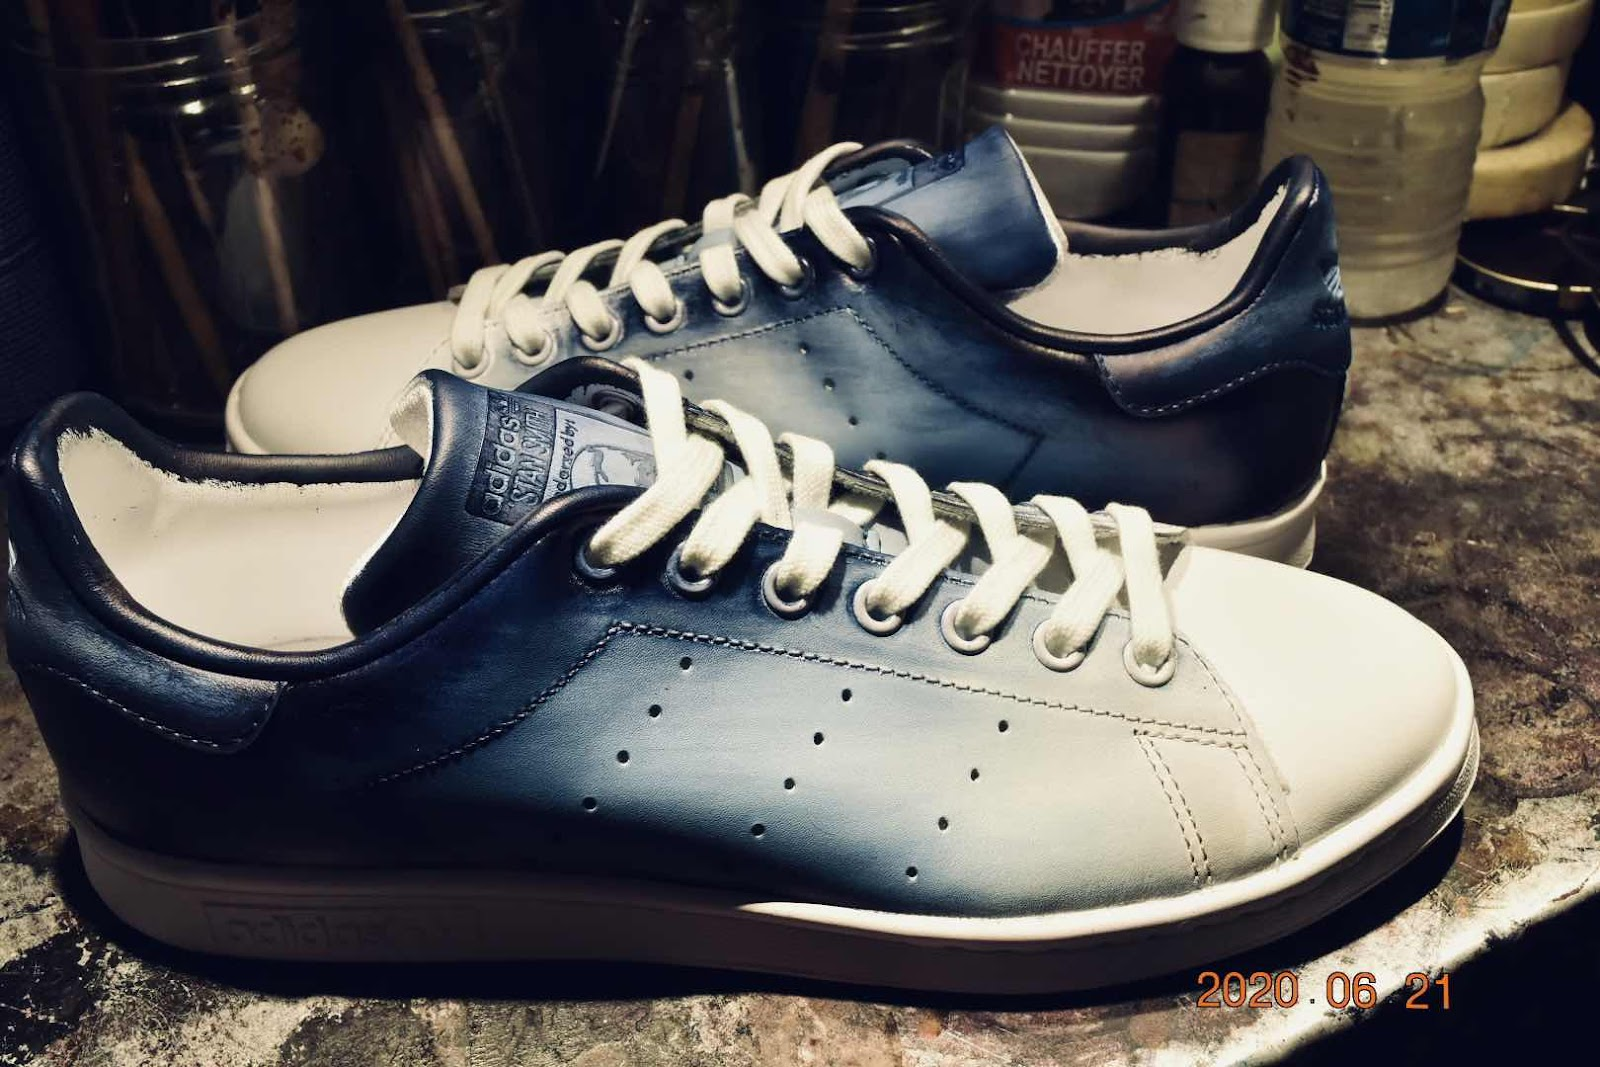 Stan Smith patine bleu Shibori 3